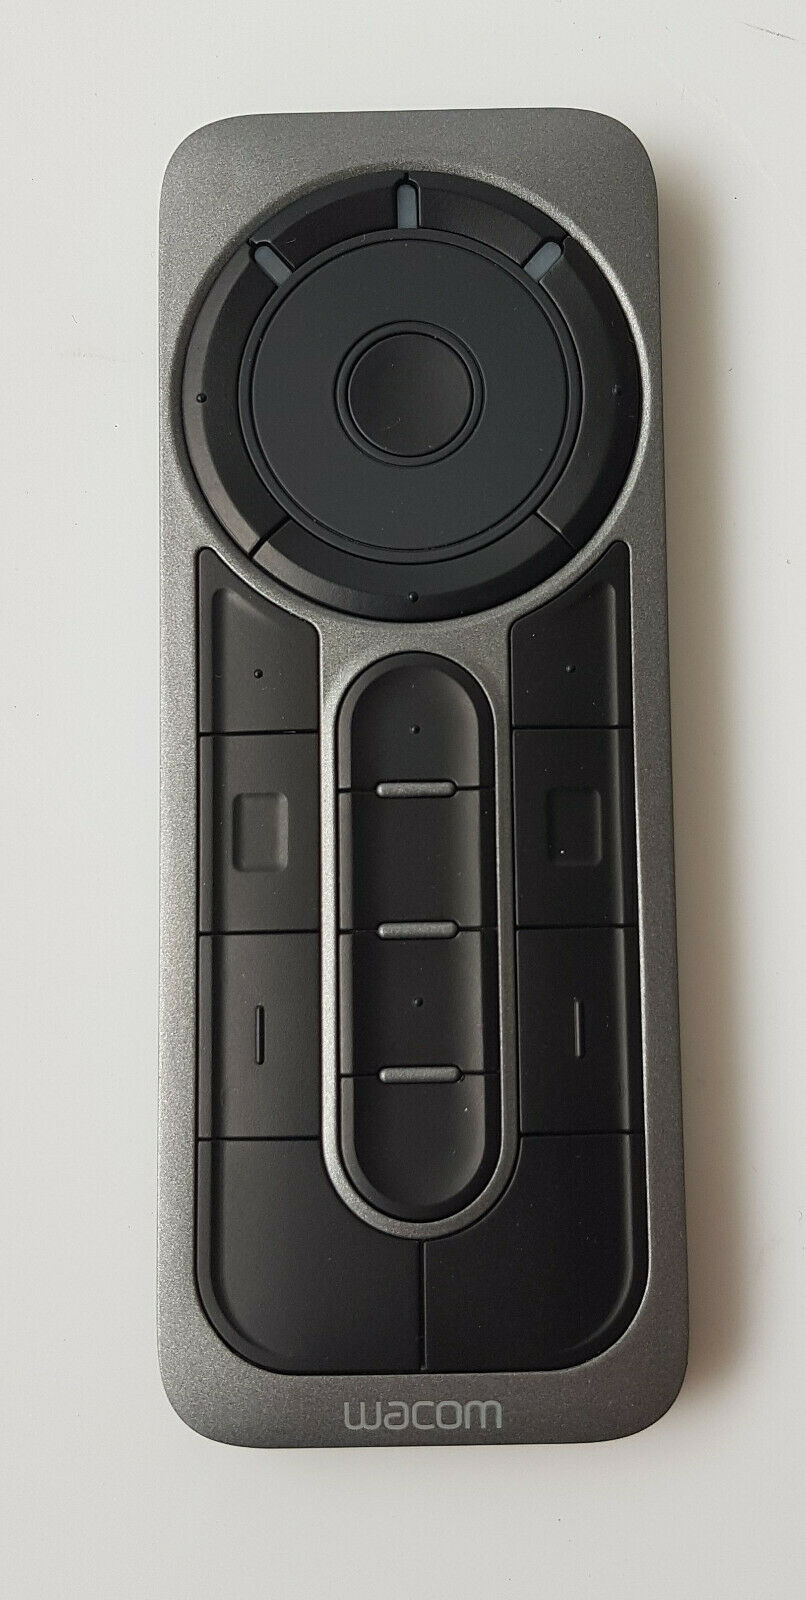 Wireless Key Remote ACK 411050 Wacom for Cintiq Intuos Pro Express from Japan*